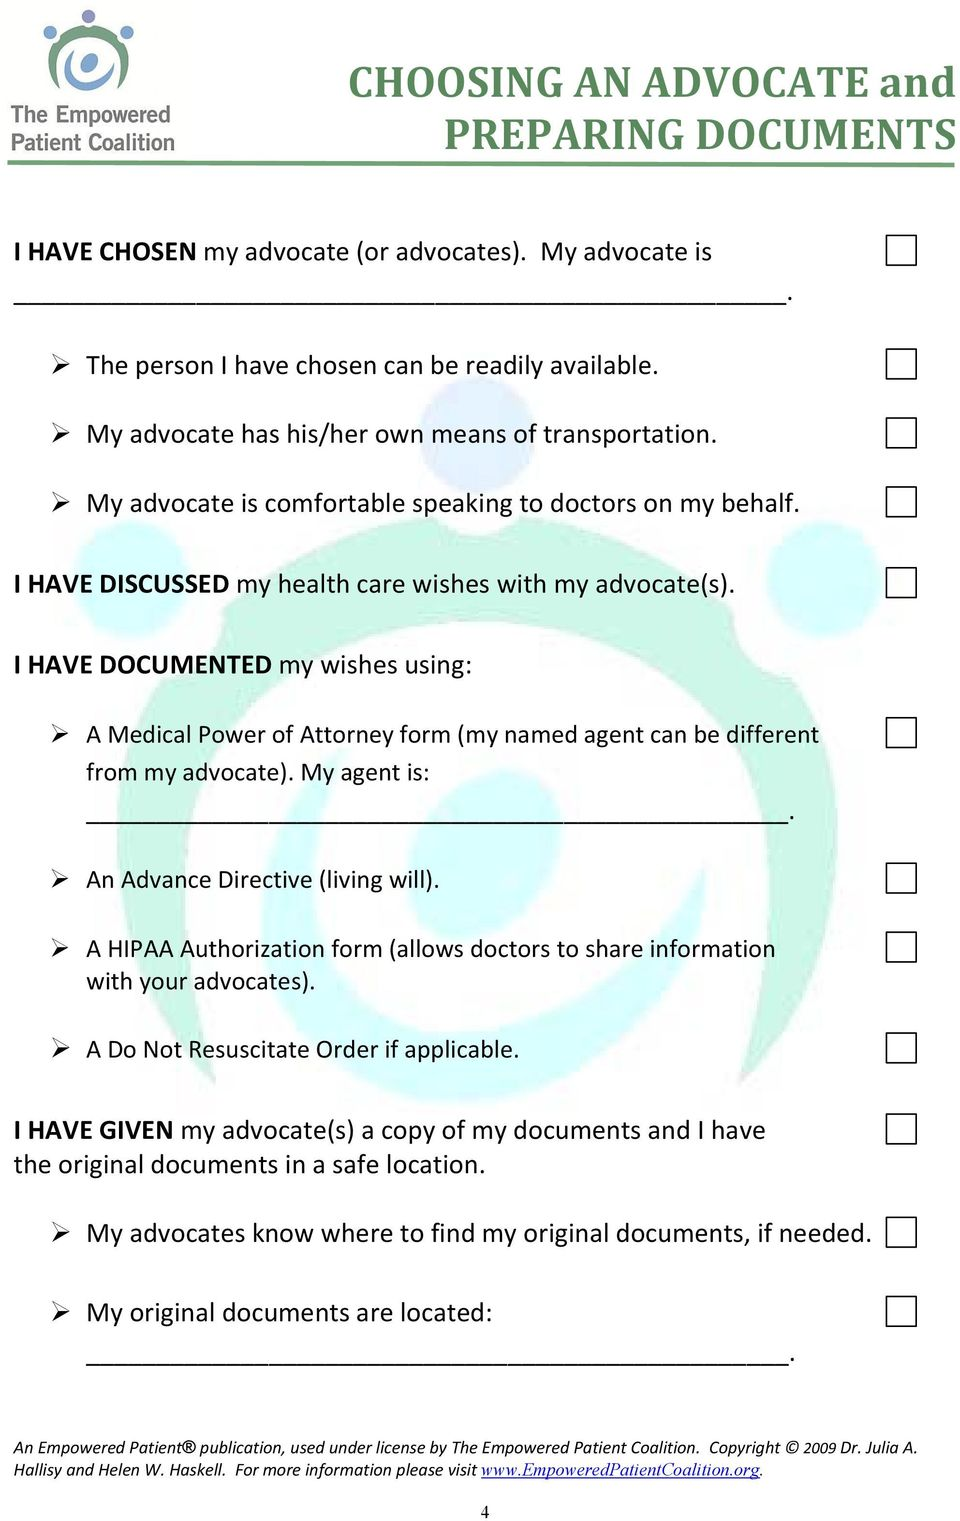 I HAVE DOCUMENTED my wishes using: A Medical Power of Attorney form (my named agent can be different from my advocate). My agent is:. An Advance Directive (living will).